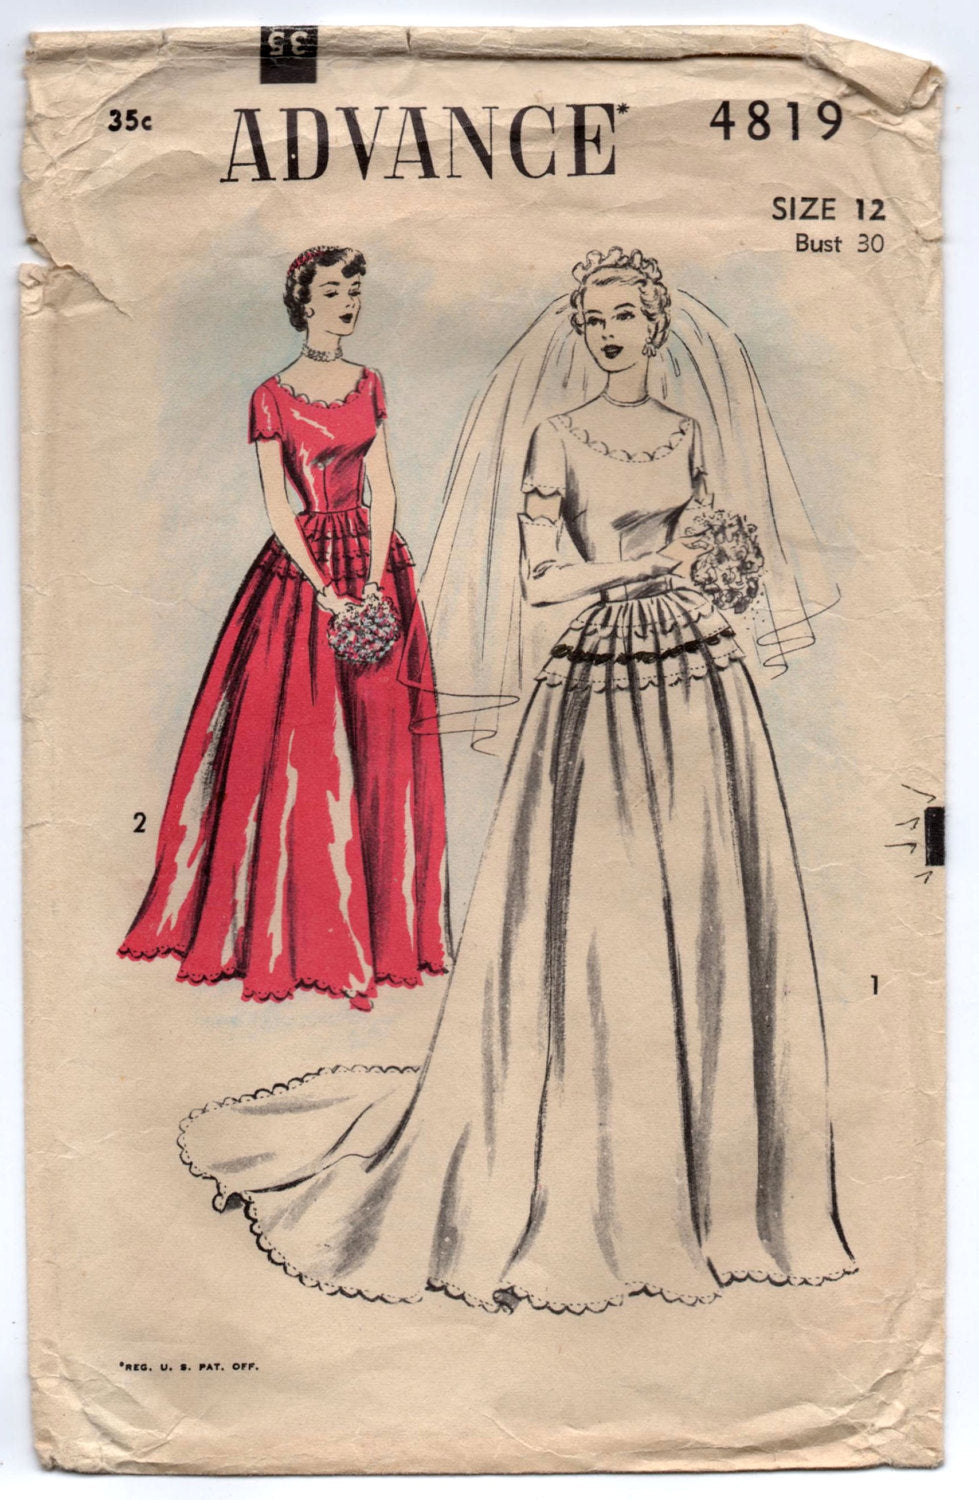 1950's Advance Wedding Dress with Scooped Scallop Neckline and Glove pattern - Bust 30